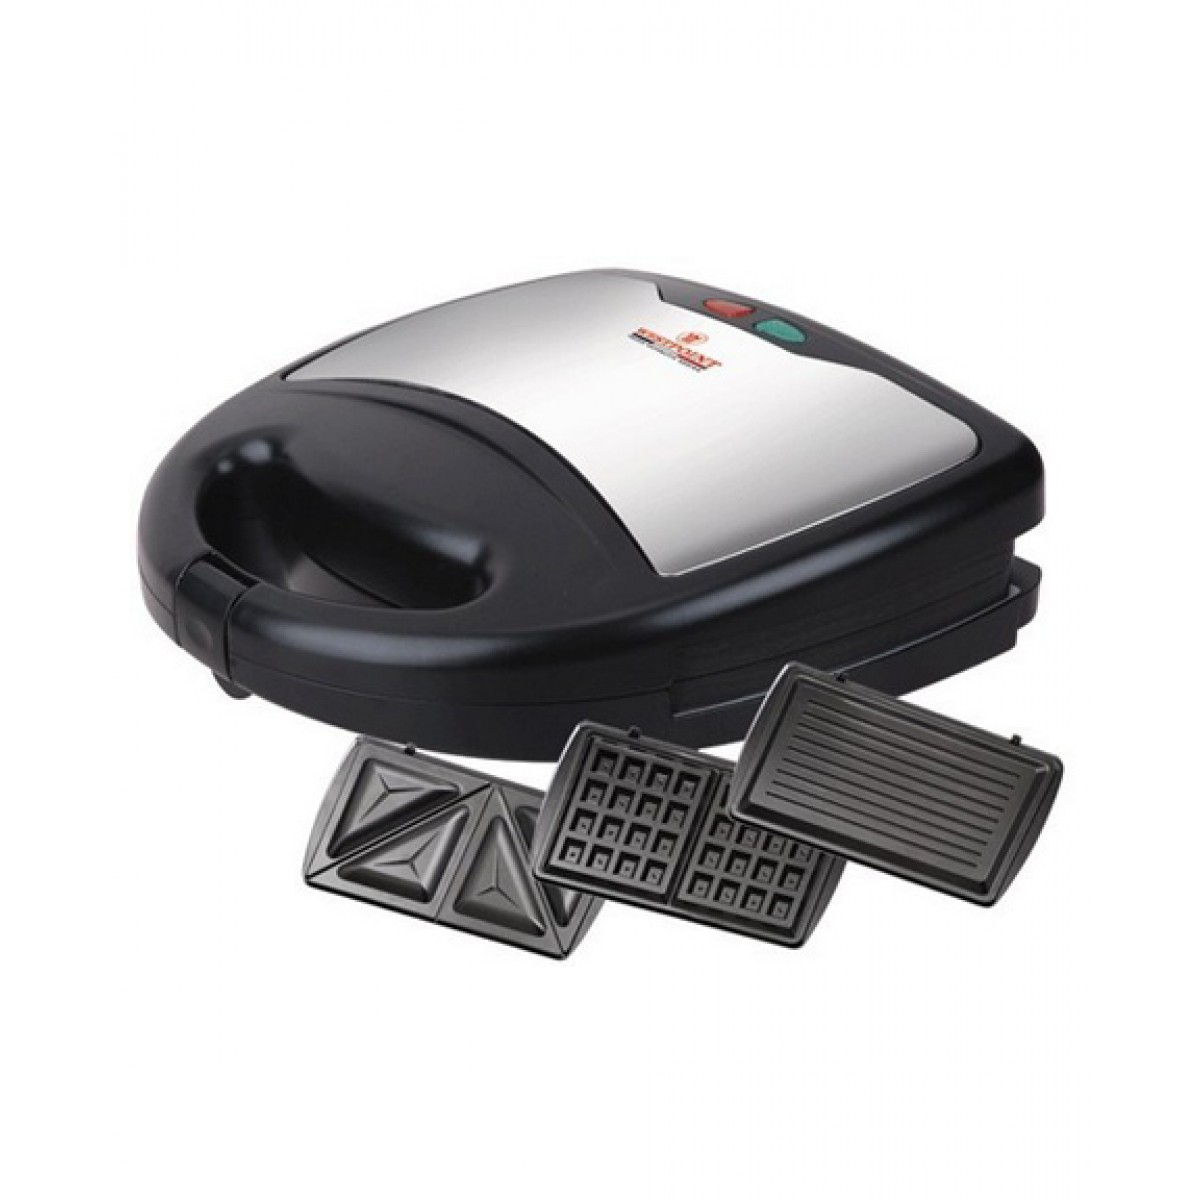 Westpoint Sandwich Maker Wf 6193 Price In Pakistan Buy Westpoint 4 Slice Sandwich Maker Ishopping Pk